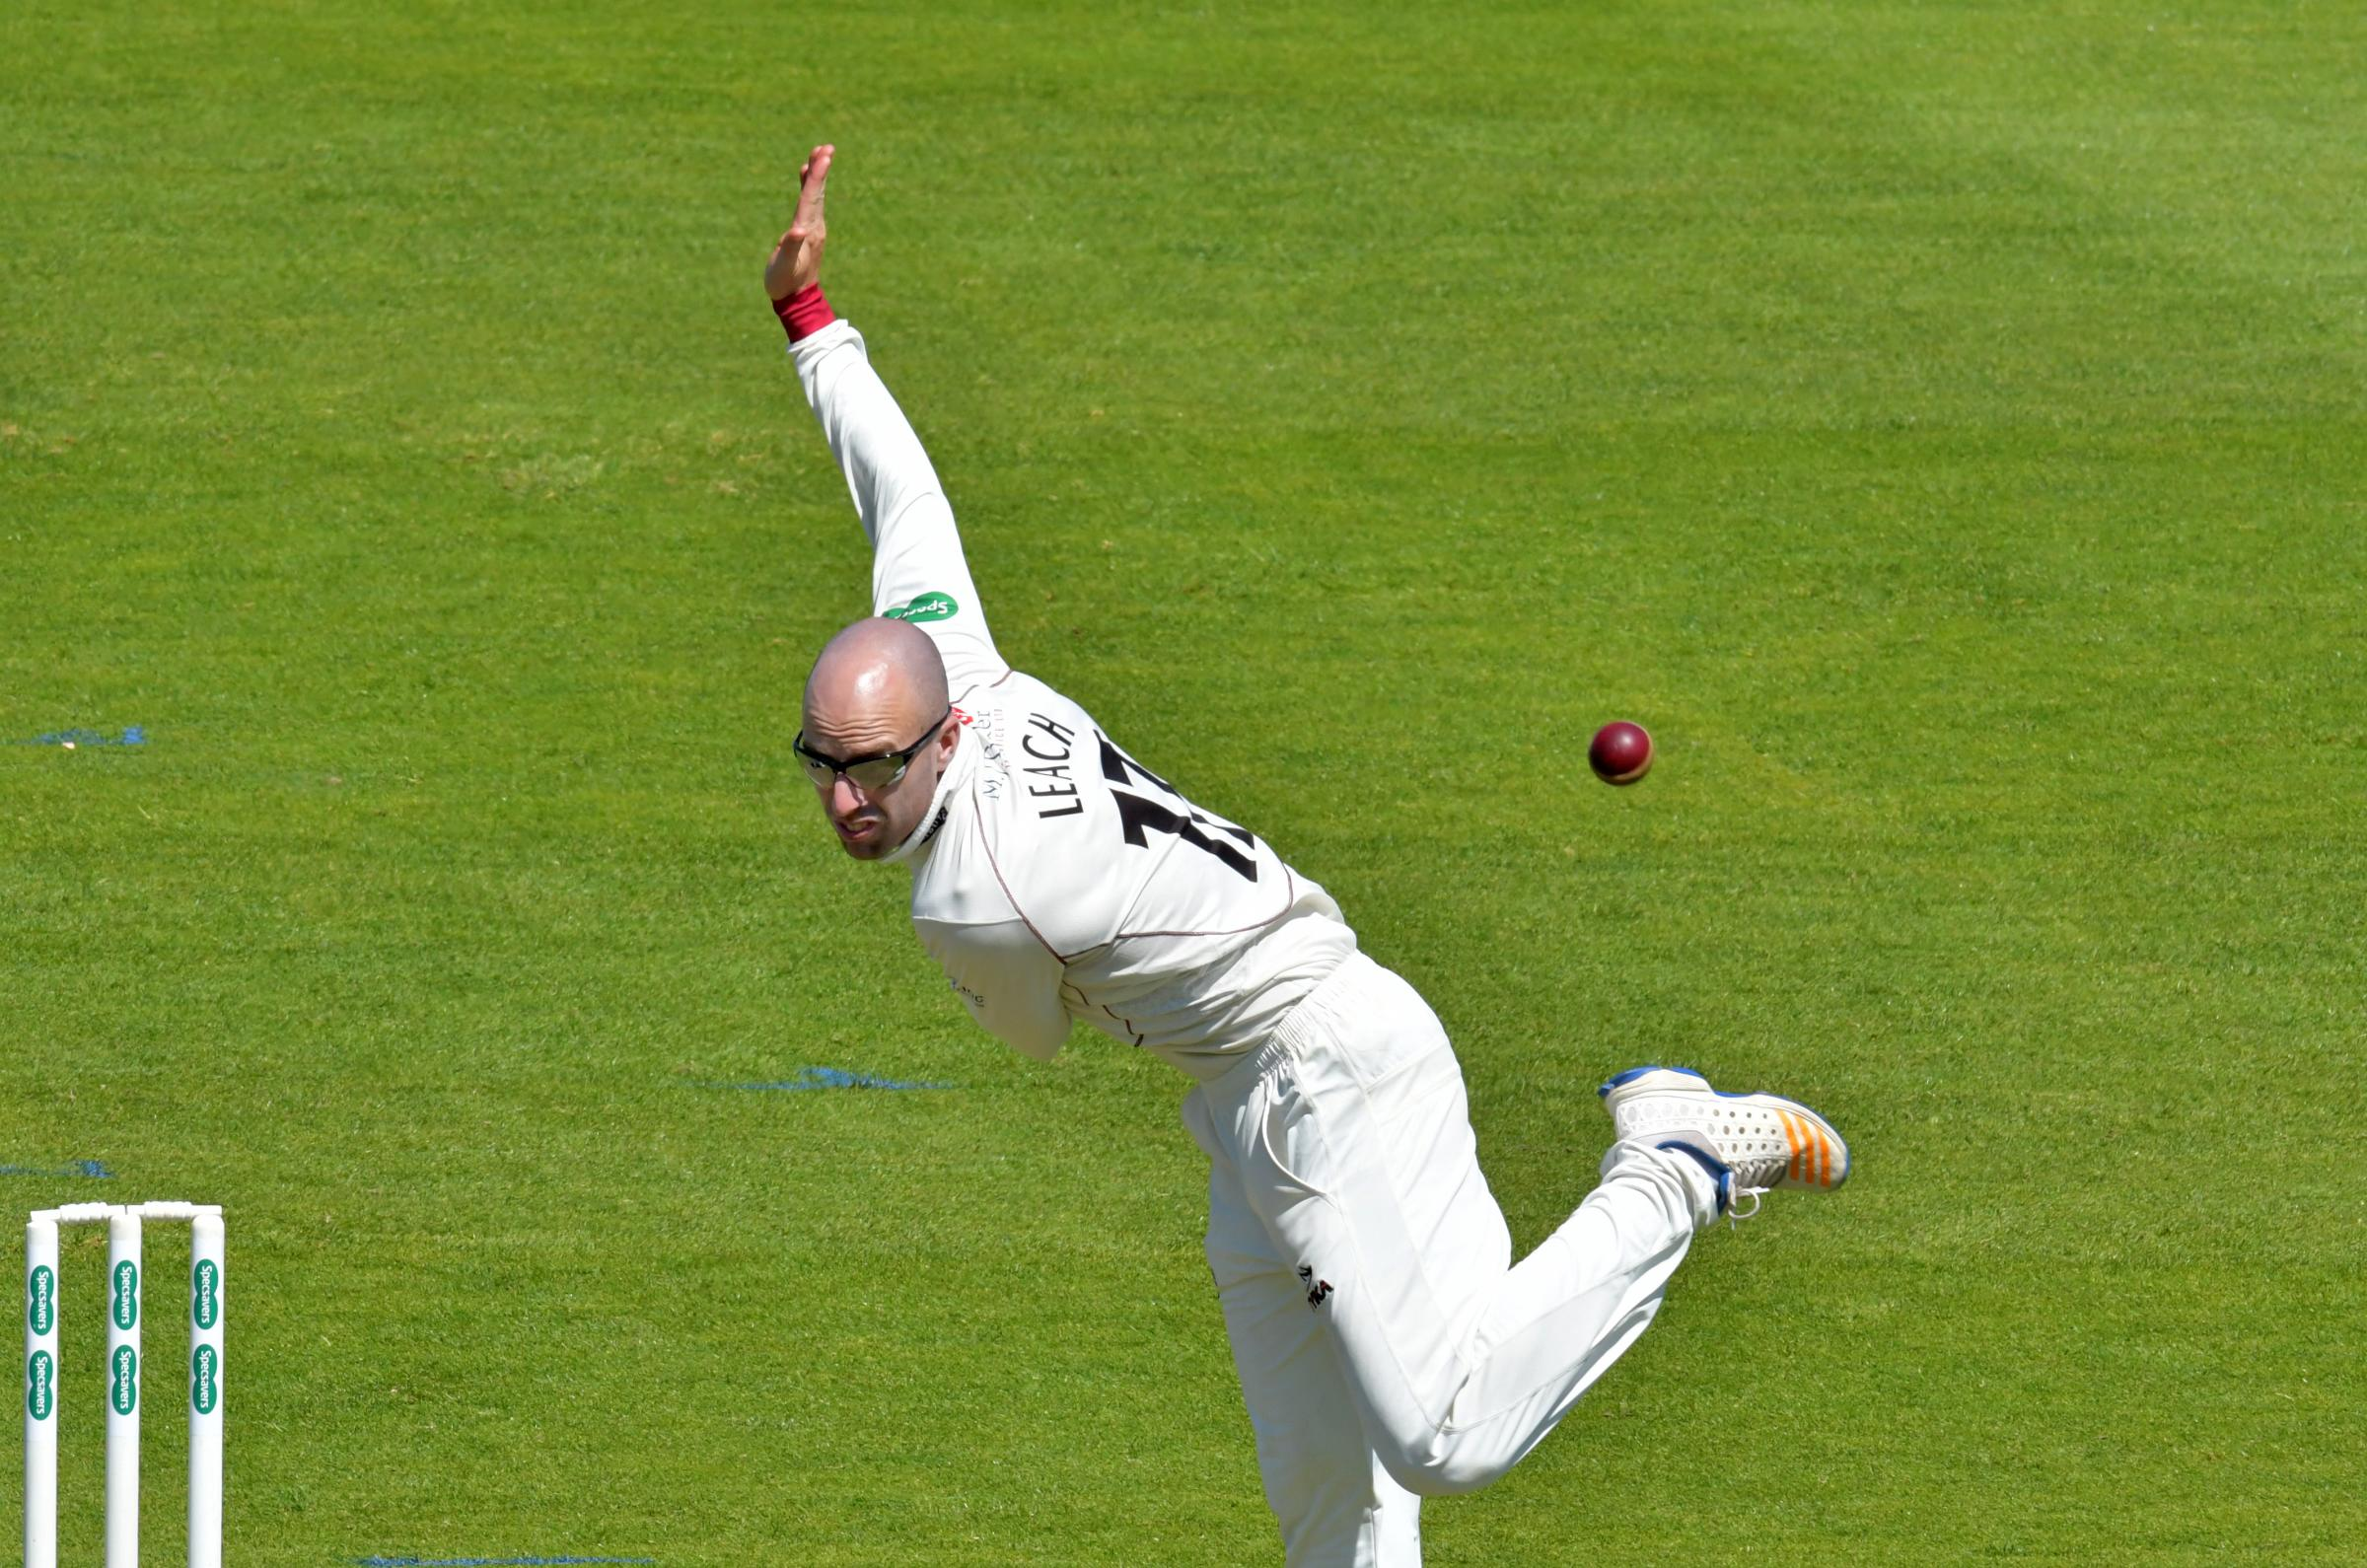 OVERLOOKED AGAIN: Jack Leach has not made the England squad for their tour of New Zealand. Pic: Somerset CCC